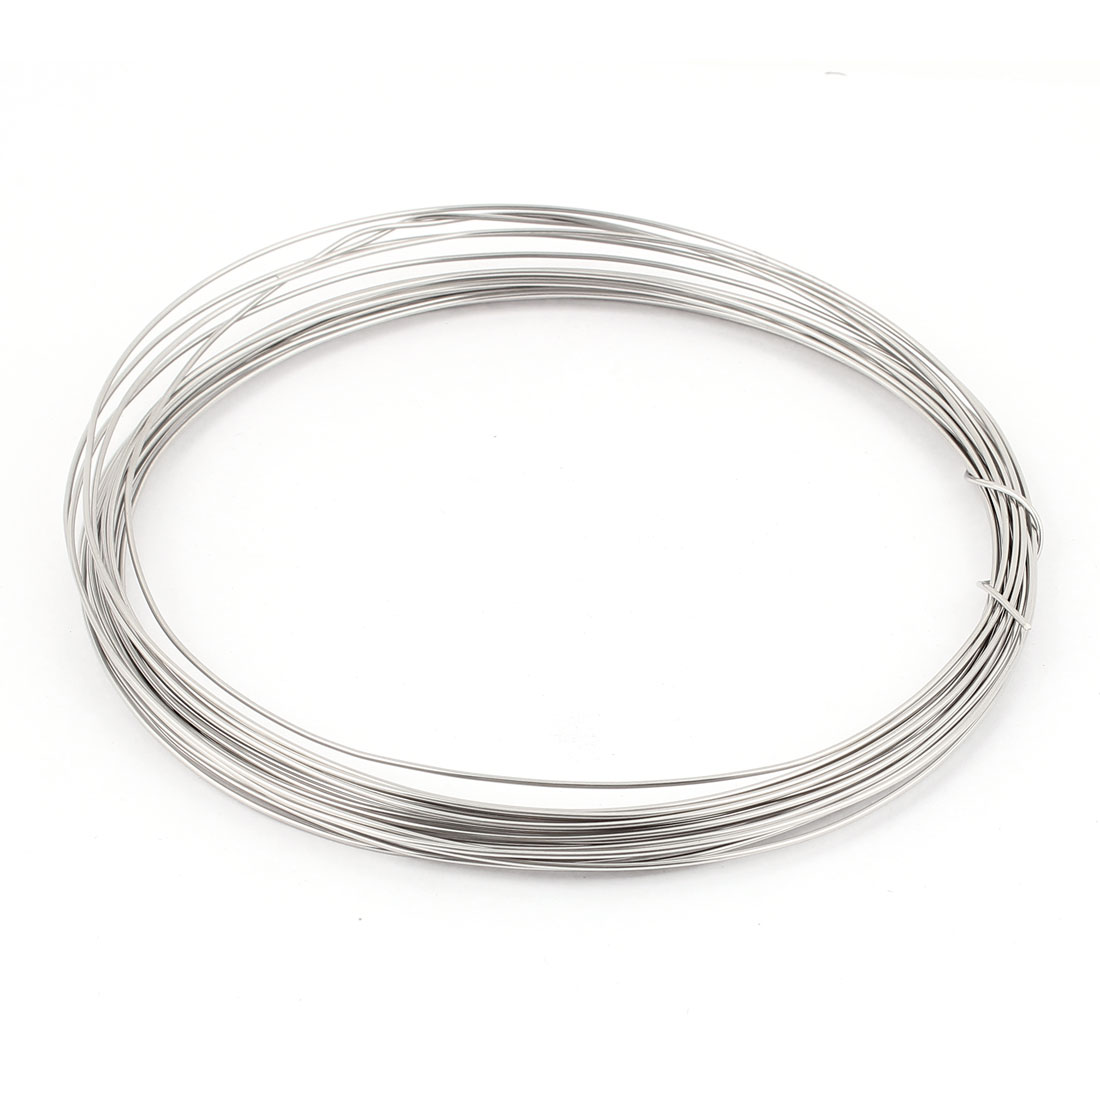 Nichrome 80 1.2mm 16 Gauge AWG Heater Wire Heating Element 10M 33ft Long